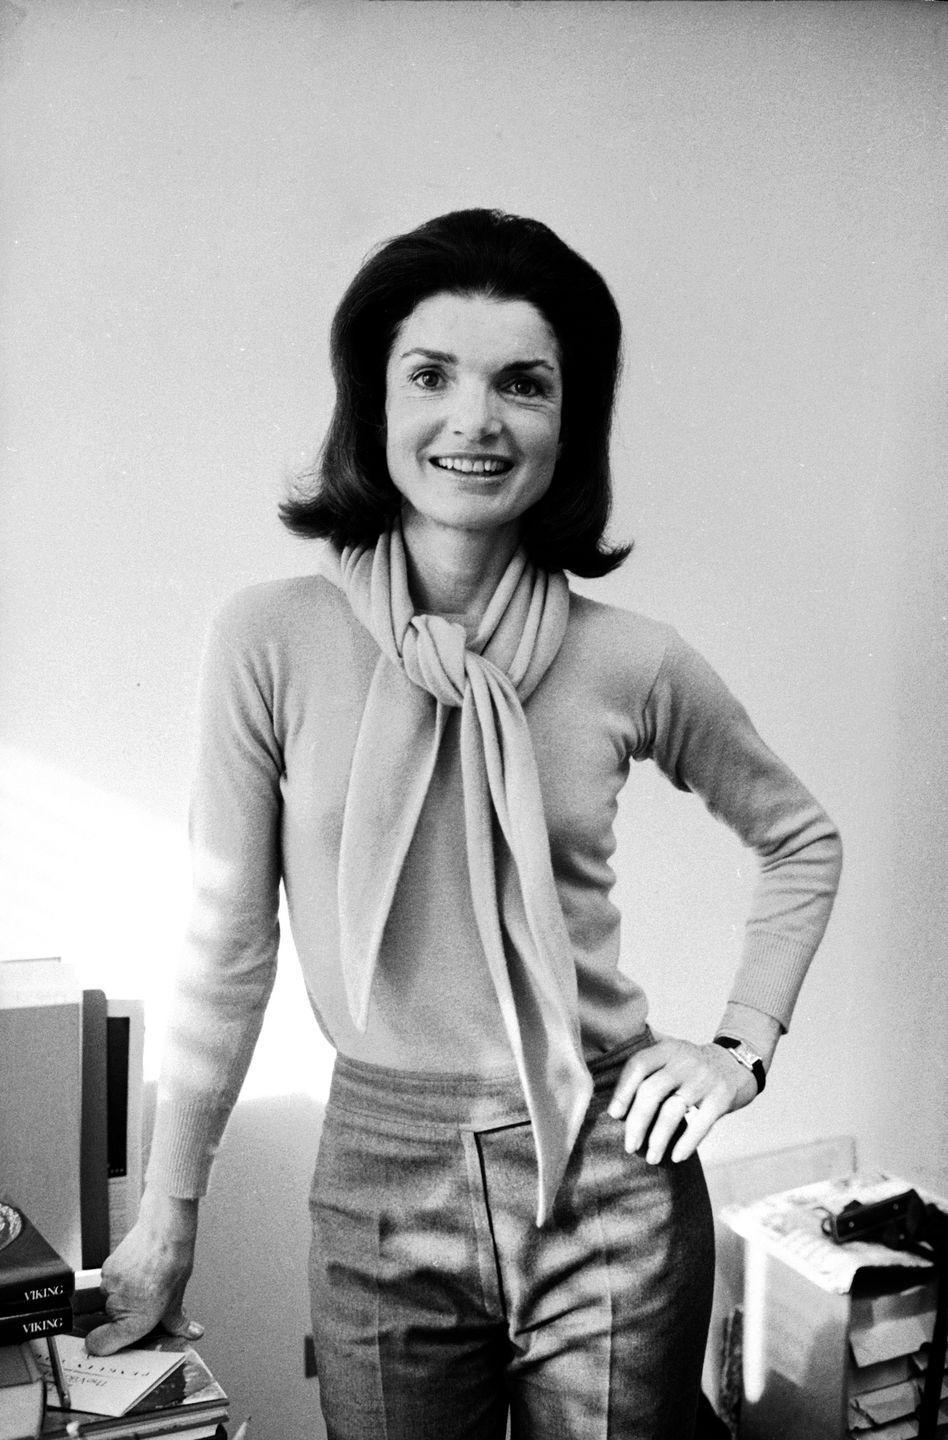 """<p>Jackie worked for the <em>Washington Times-Herald</em> in 1952 as the paper's """"<a href=""""http://www.history.com/news/10-things-you-may-not-know-about-jacqueline-kennedy-onassis"""" rel=""""nofollow noopener"""" target=""""_blank"""" data-ylk=""""slk:Inquiring Photographer"""" class=""""link rapid-noclick-resp"""">Inquiring Photographer</a>."""" The job required her to ask people on the streets many questions ranging from personal finances, to politics, to relationships. </p>"""